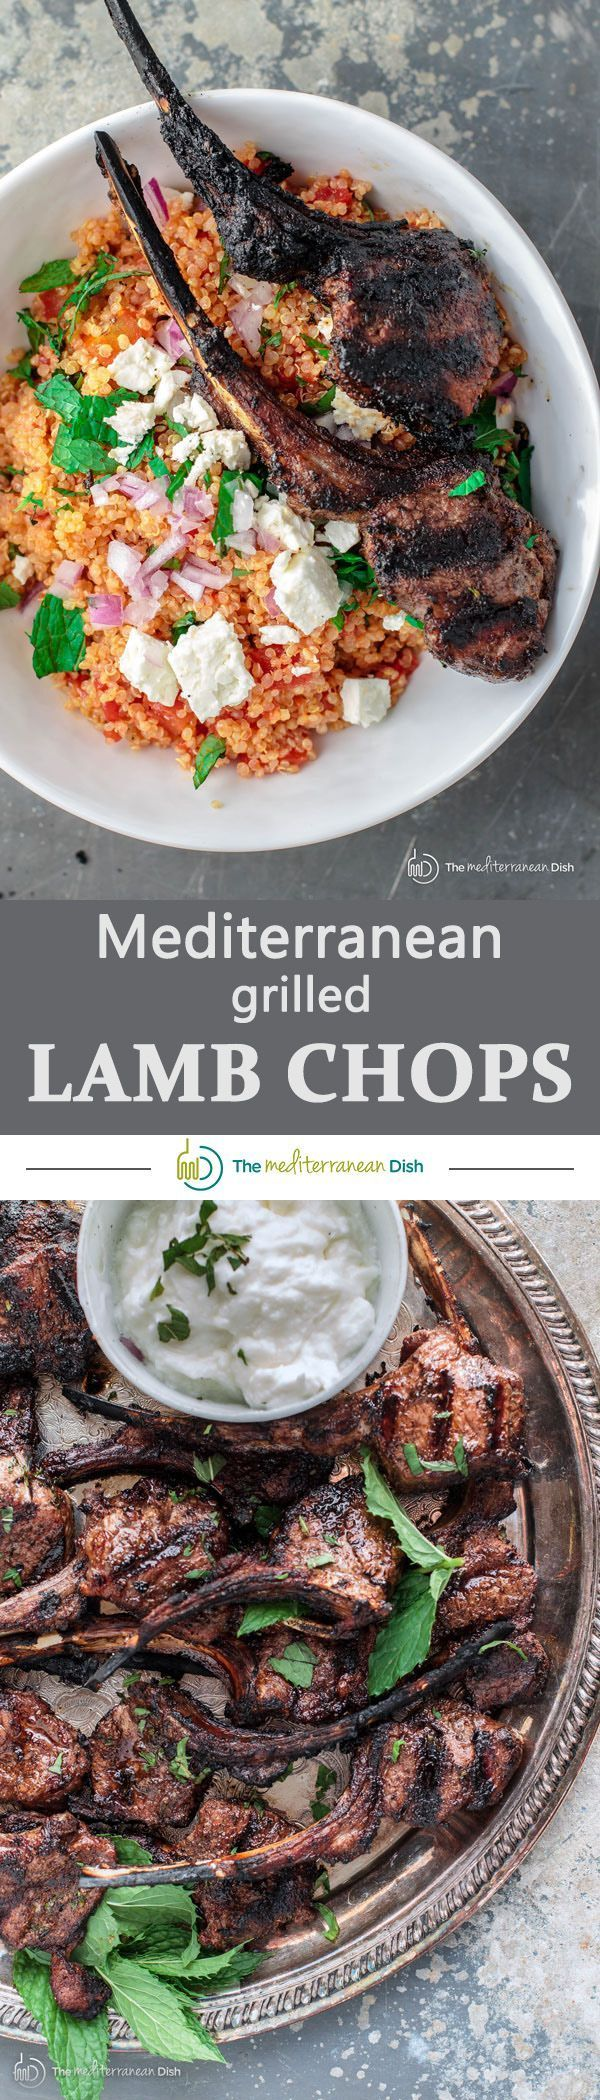 Mediterranean Grilled Lamb Chop Recipe with Tomato Mint Quinoa | The Mediterranean Dish. A quick and impressive meal! Rack of lamb, divided into chops, marinated with an awesome Mediterranean spice rub.